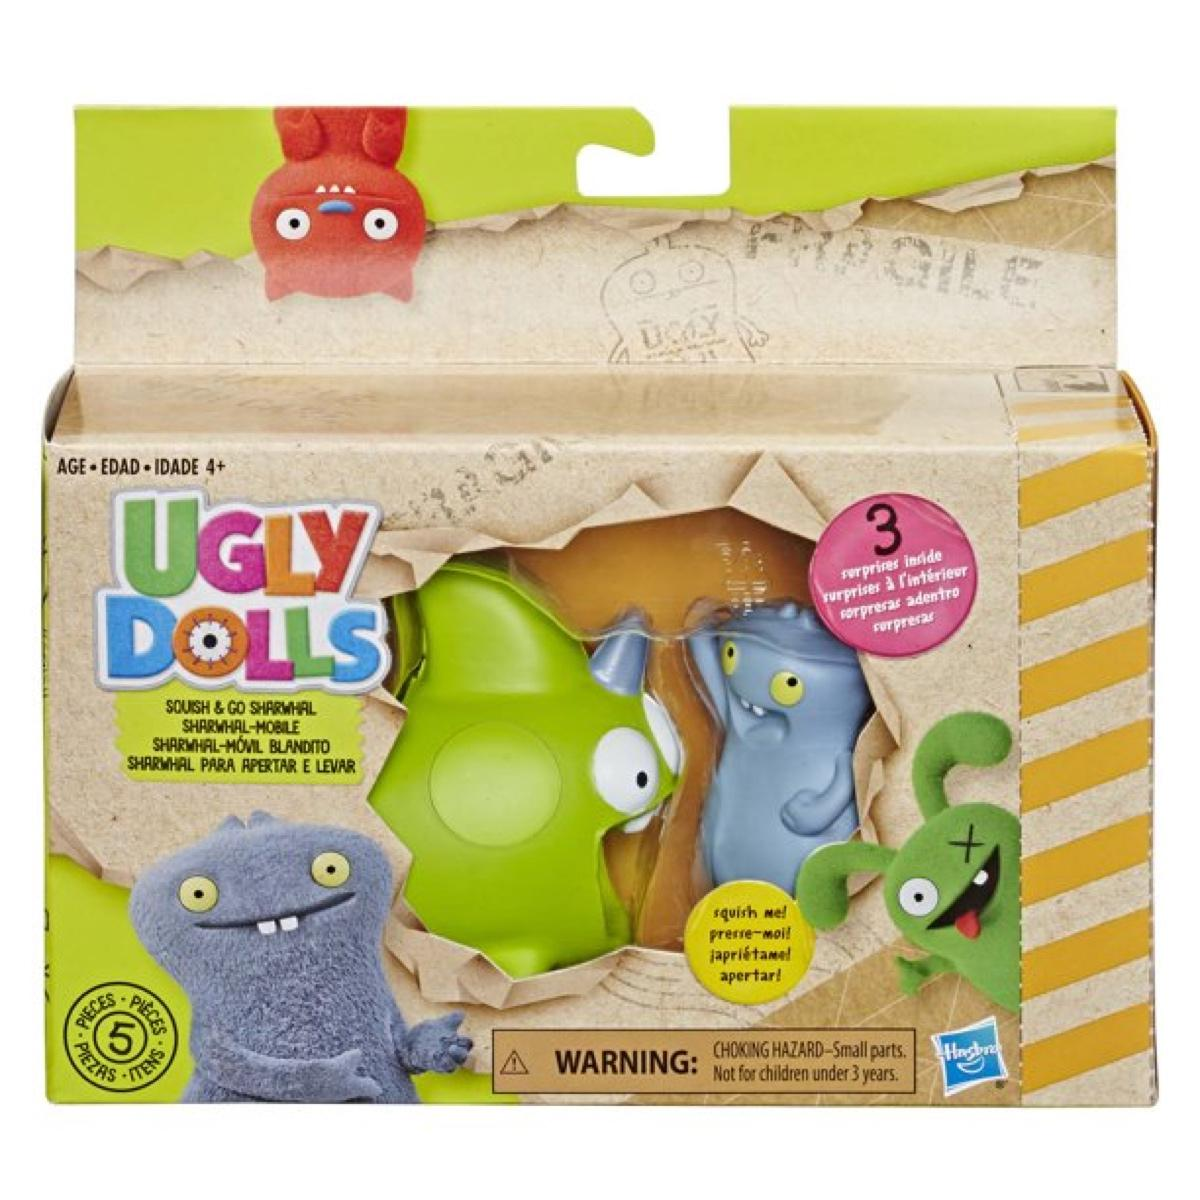 UglyDolls Babo and Squish and Go Sharwhal